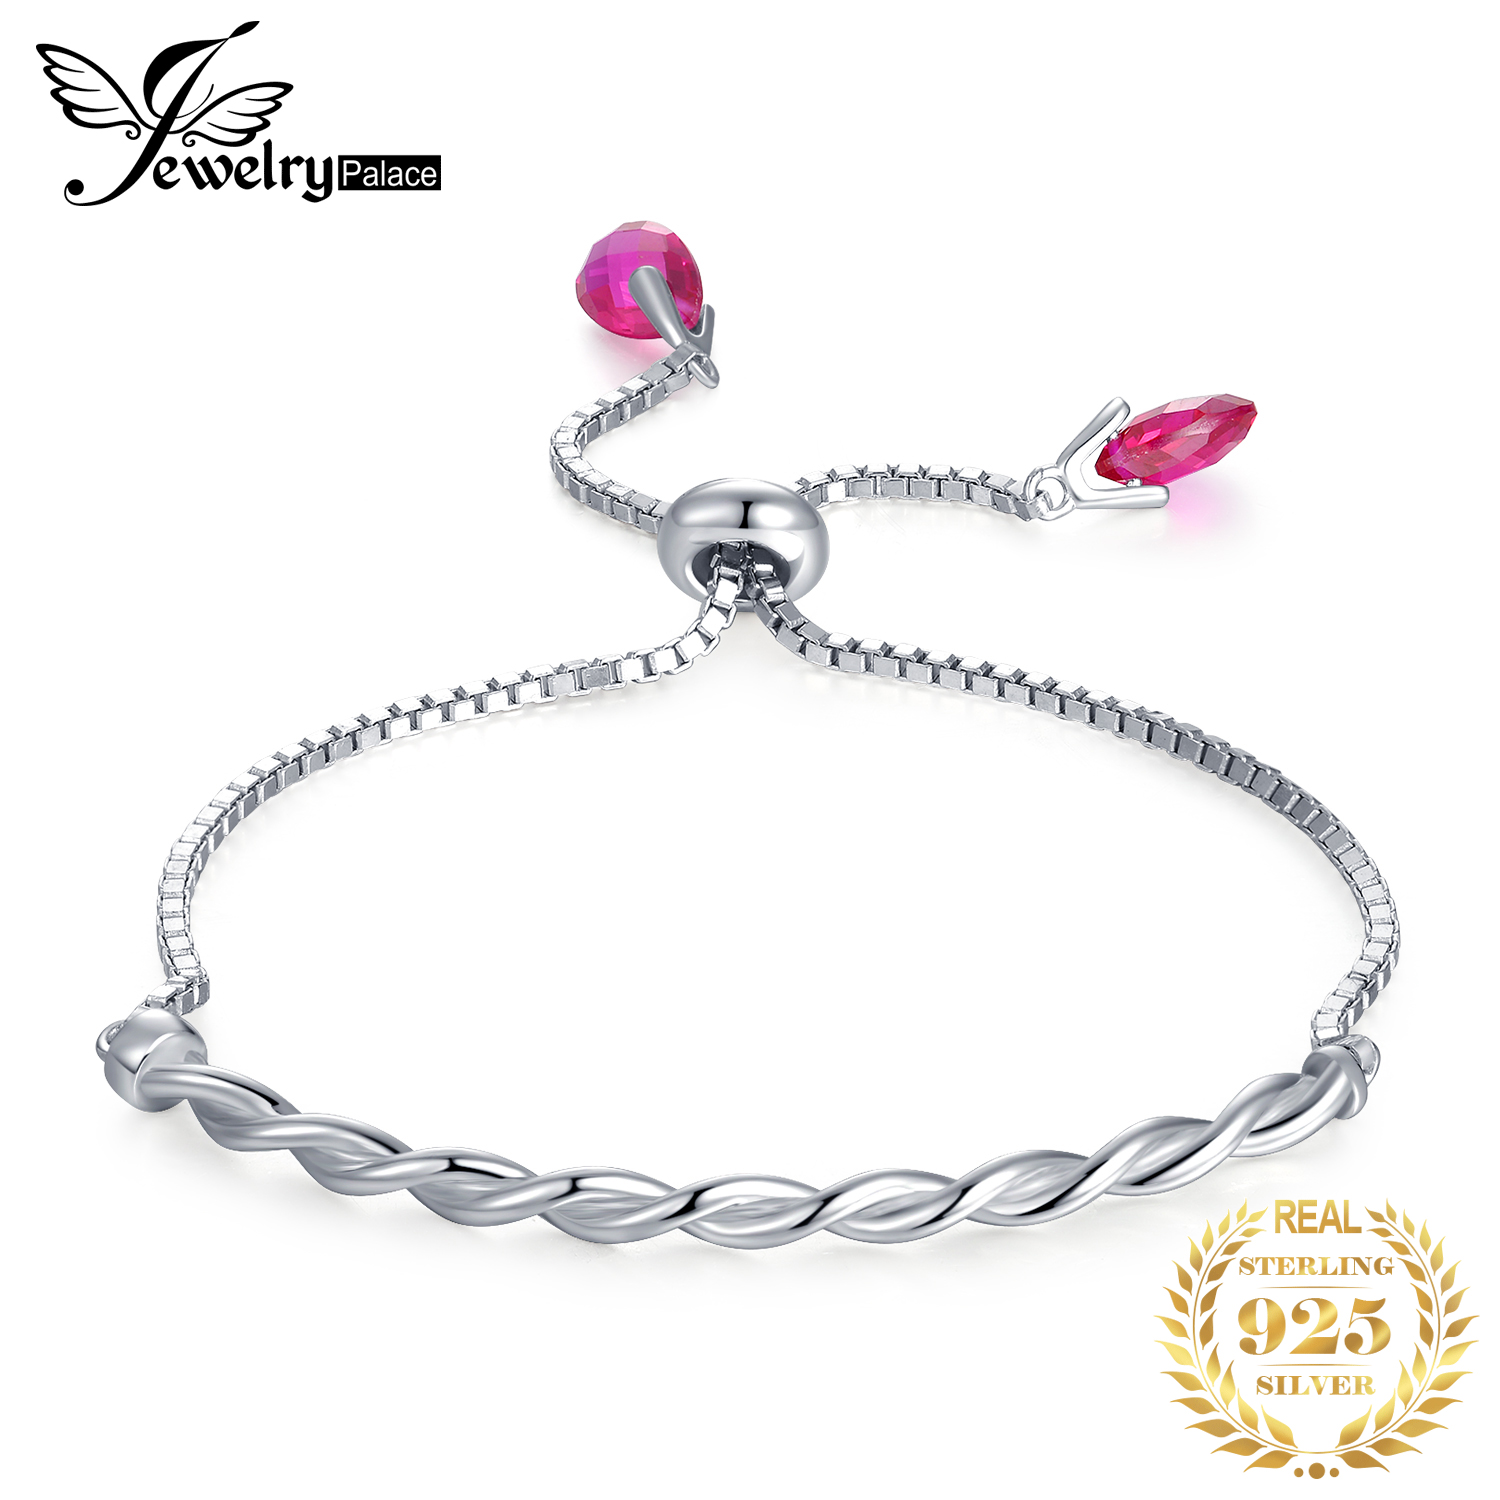 JewelryPalace Purple Created Ruby Twisted Braided Adjustable Bangle Bracelet 925 Sterling Silver For Women As Gifts